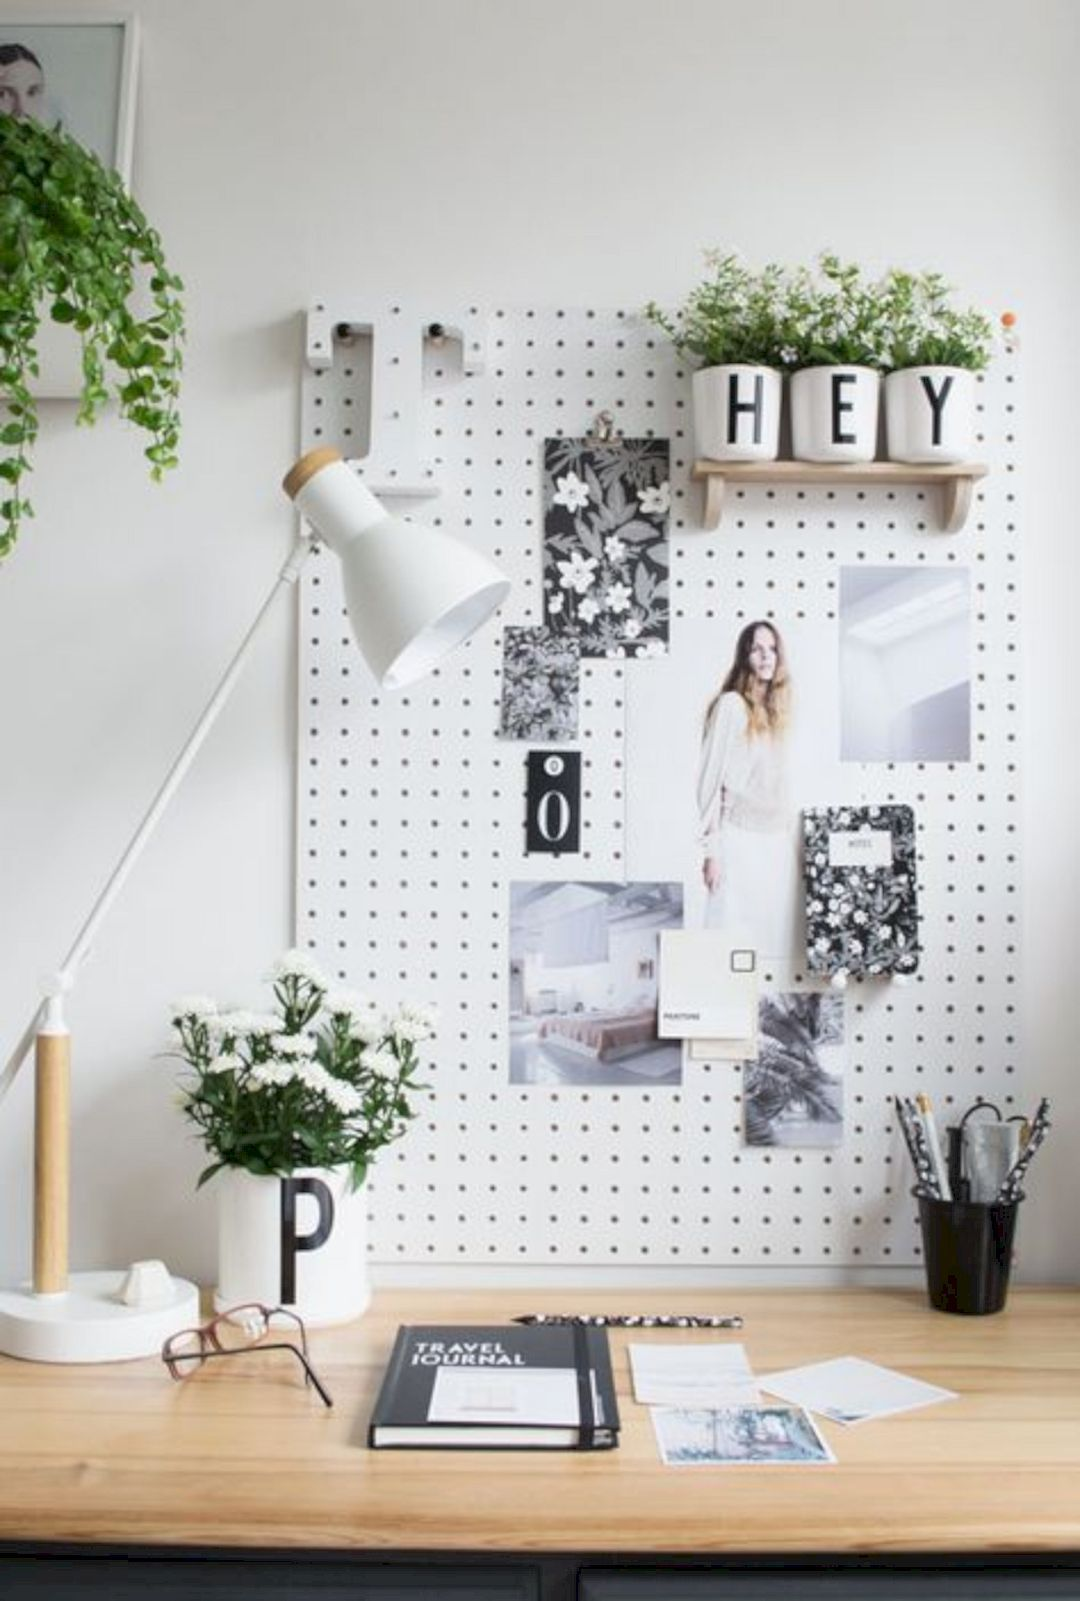 16 Office Wall Decoration Ideas | Office walls, Wall decorations and ...